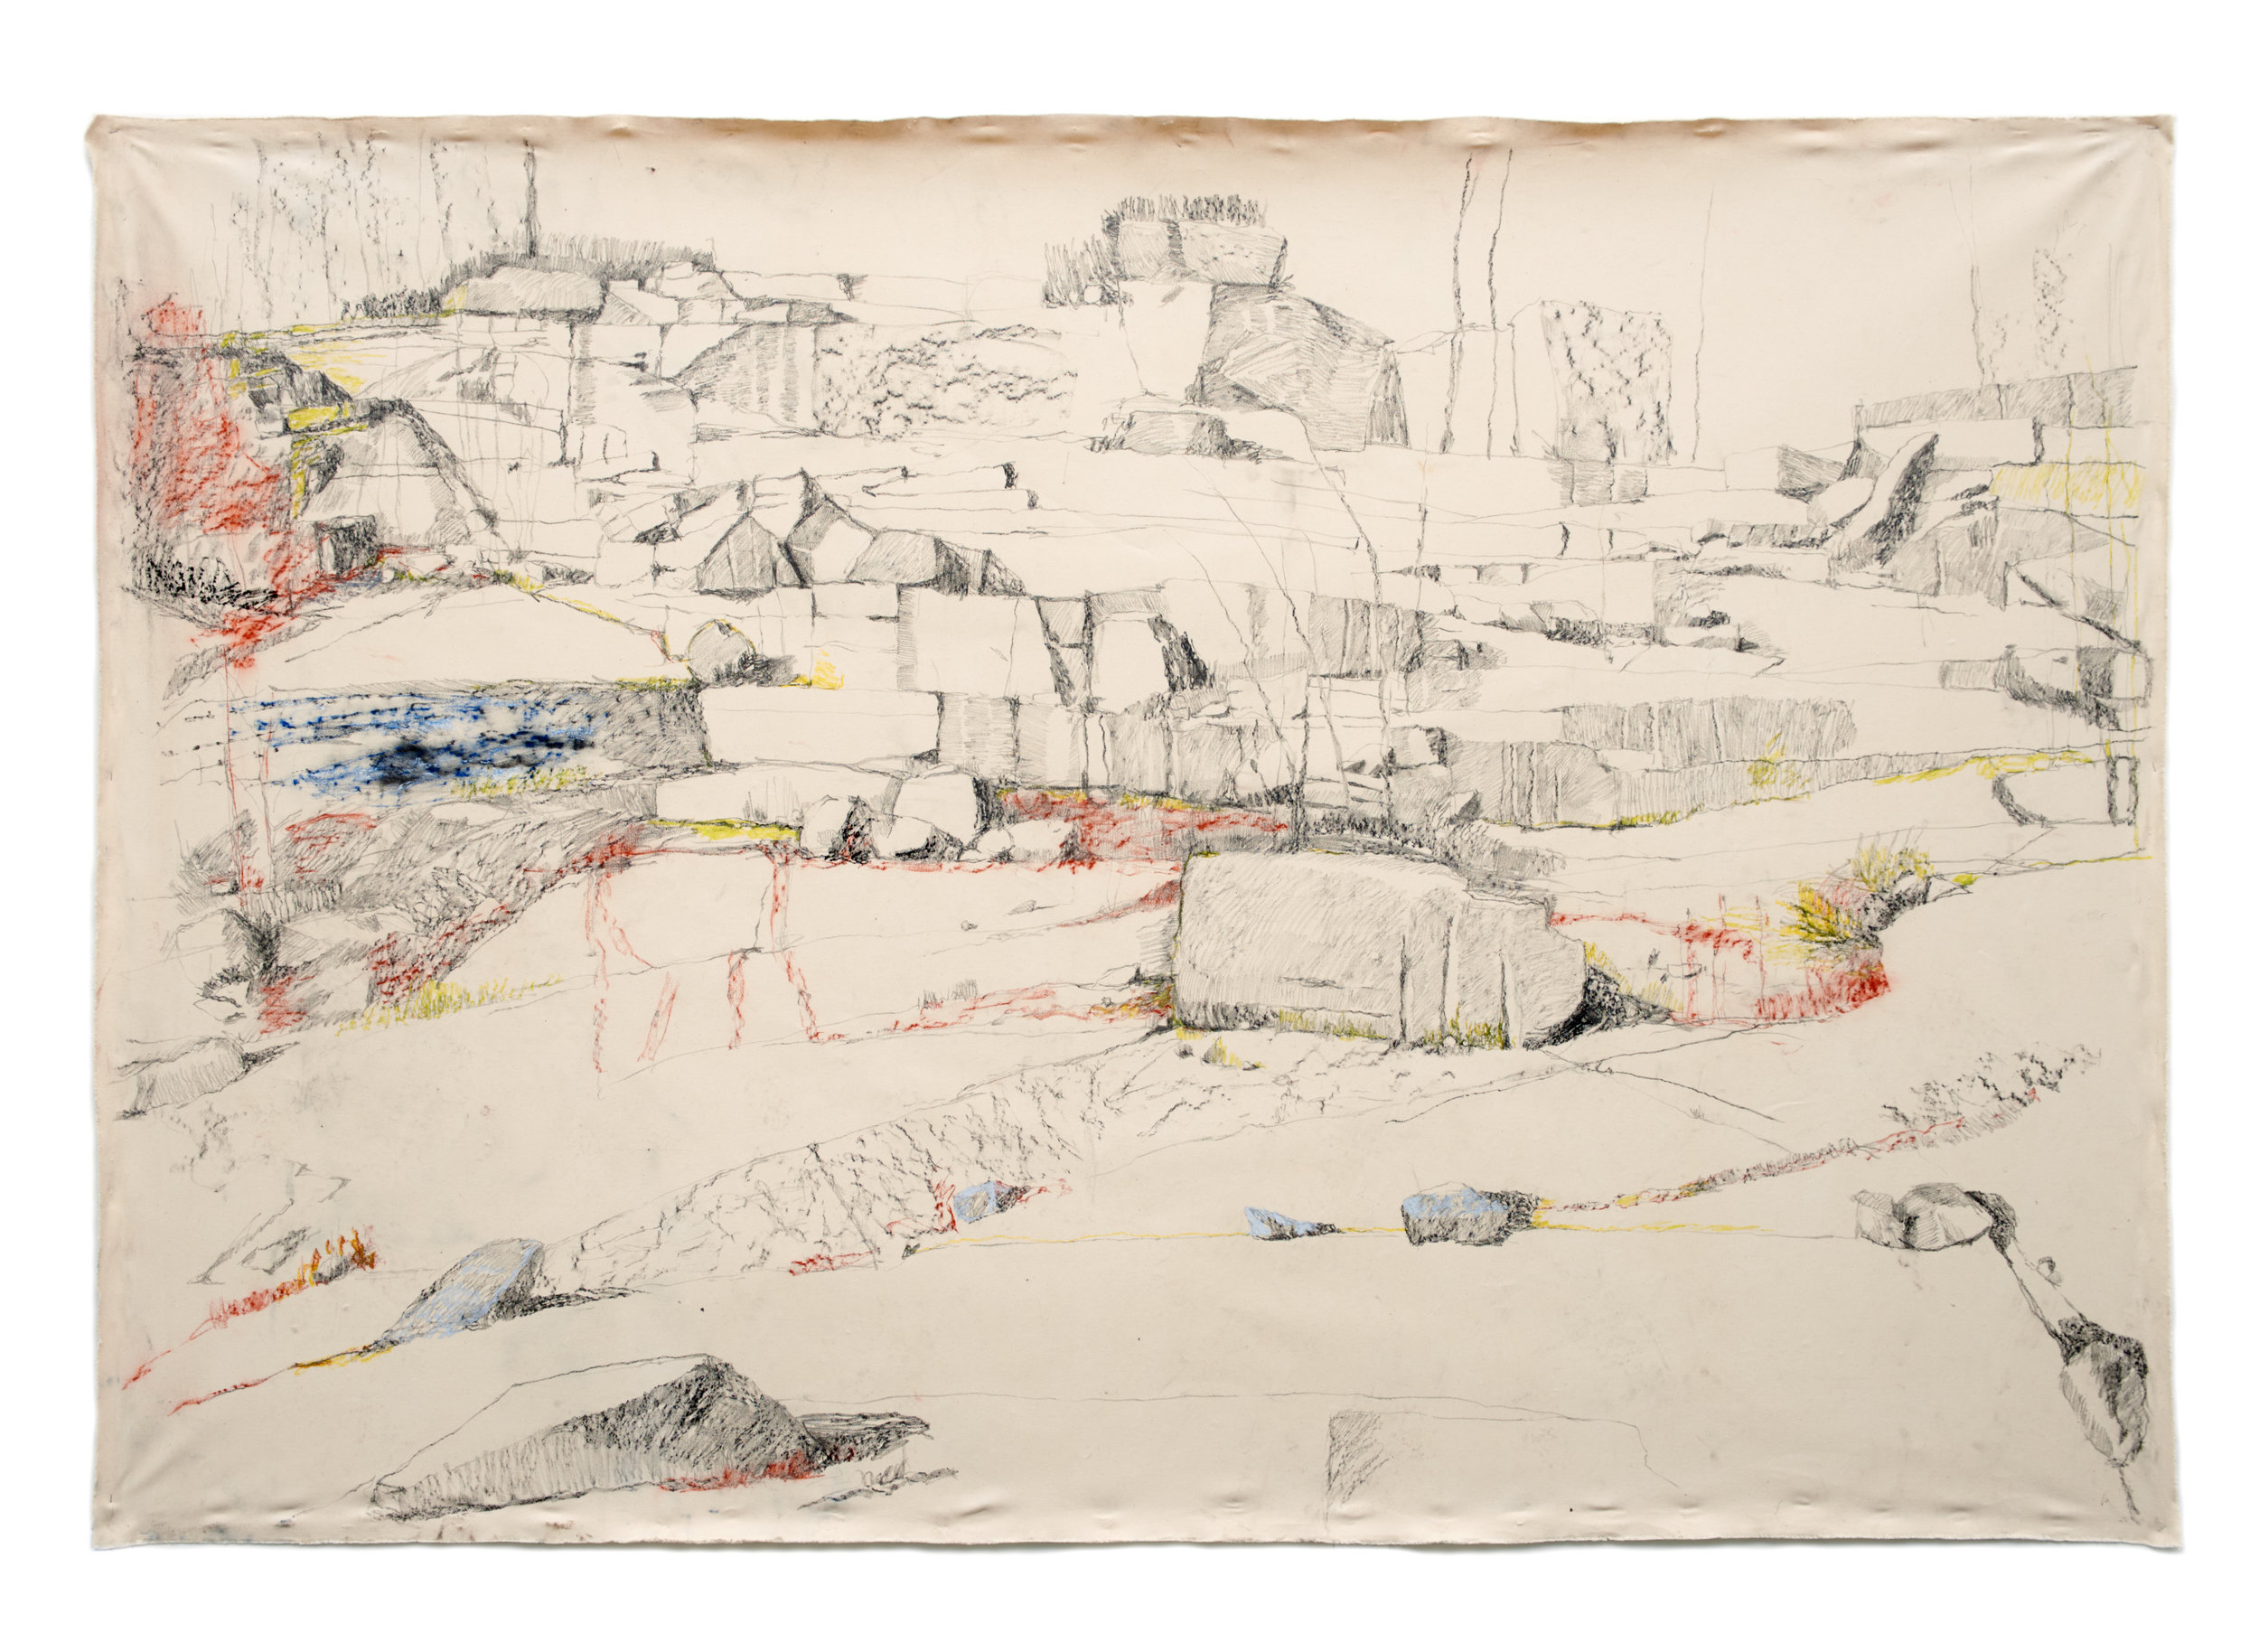 Settlement / graphite, oil pastel, and conté on canvas, 72 x 108 in., 2017